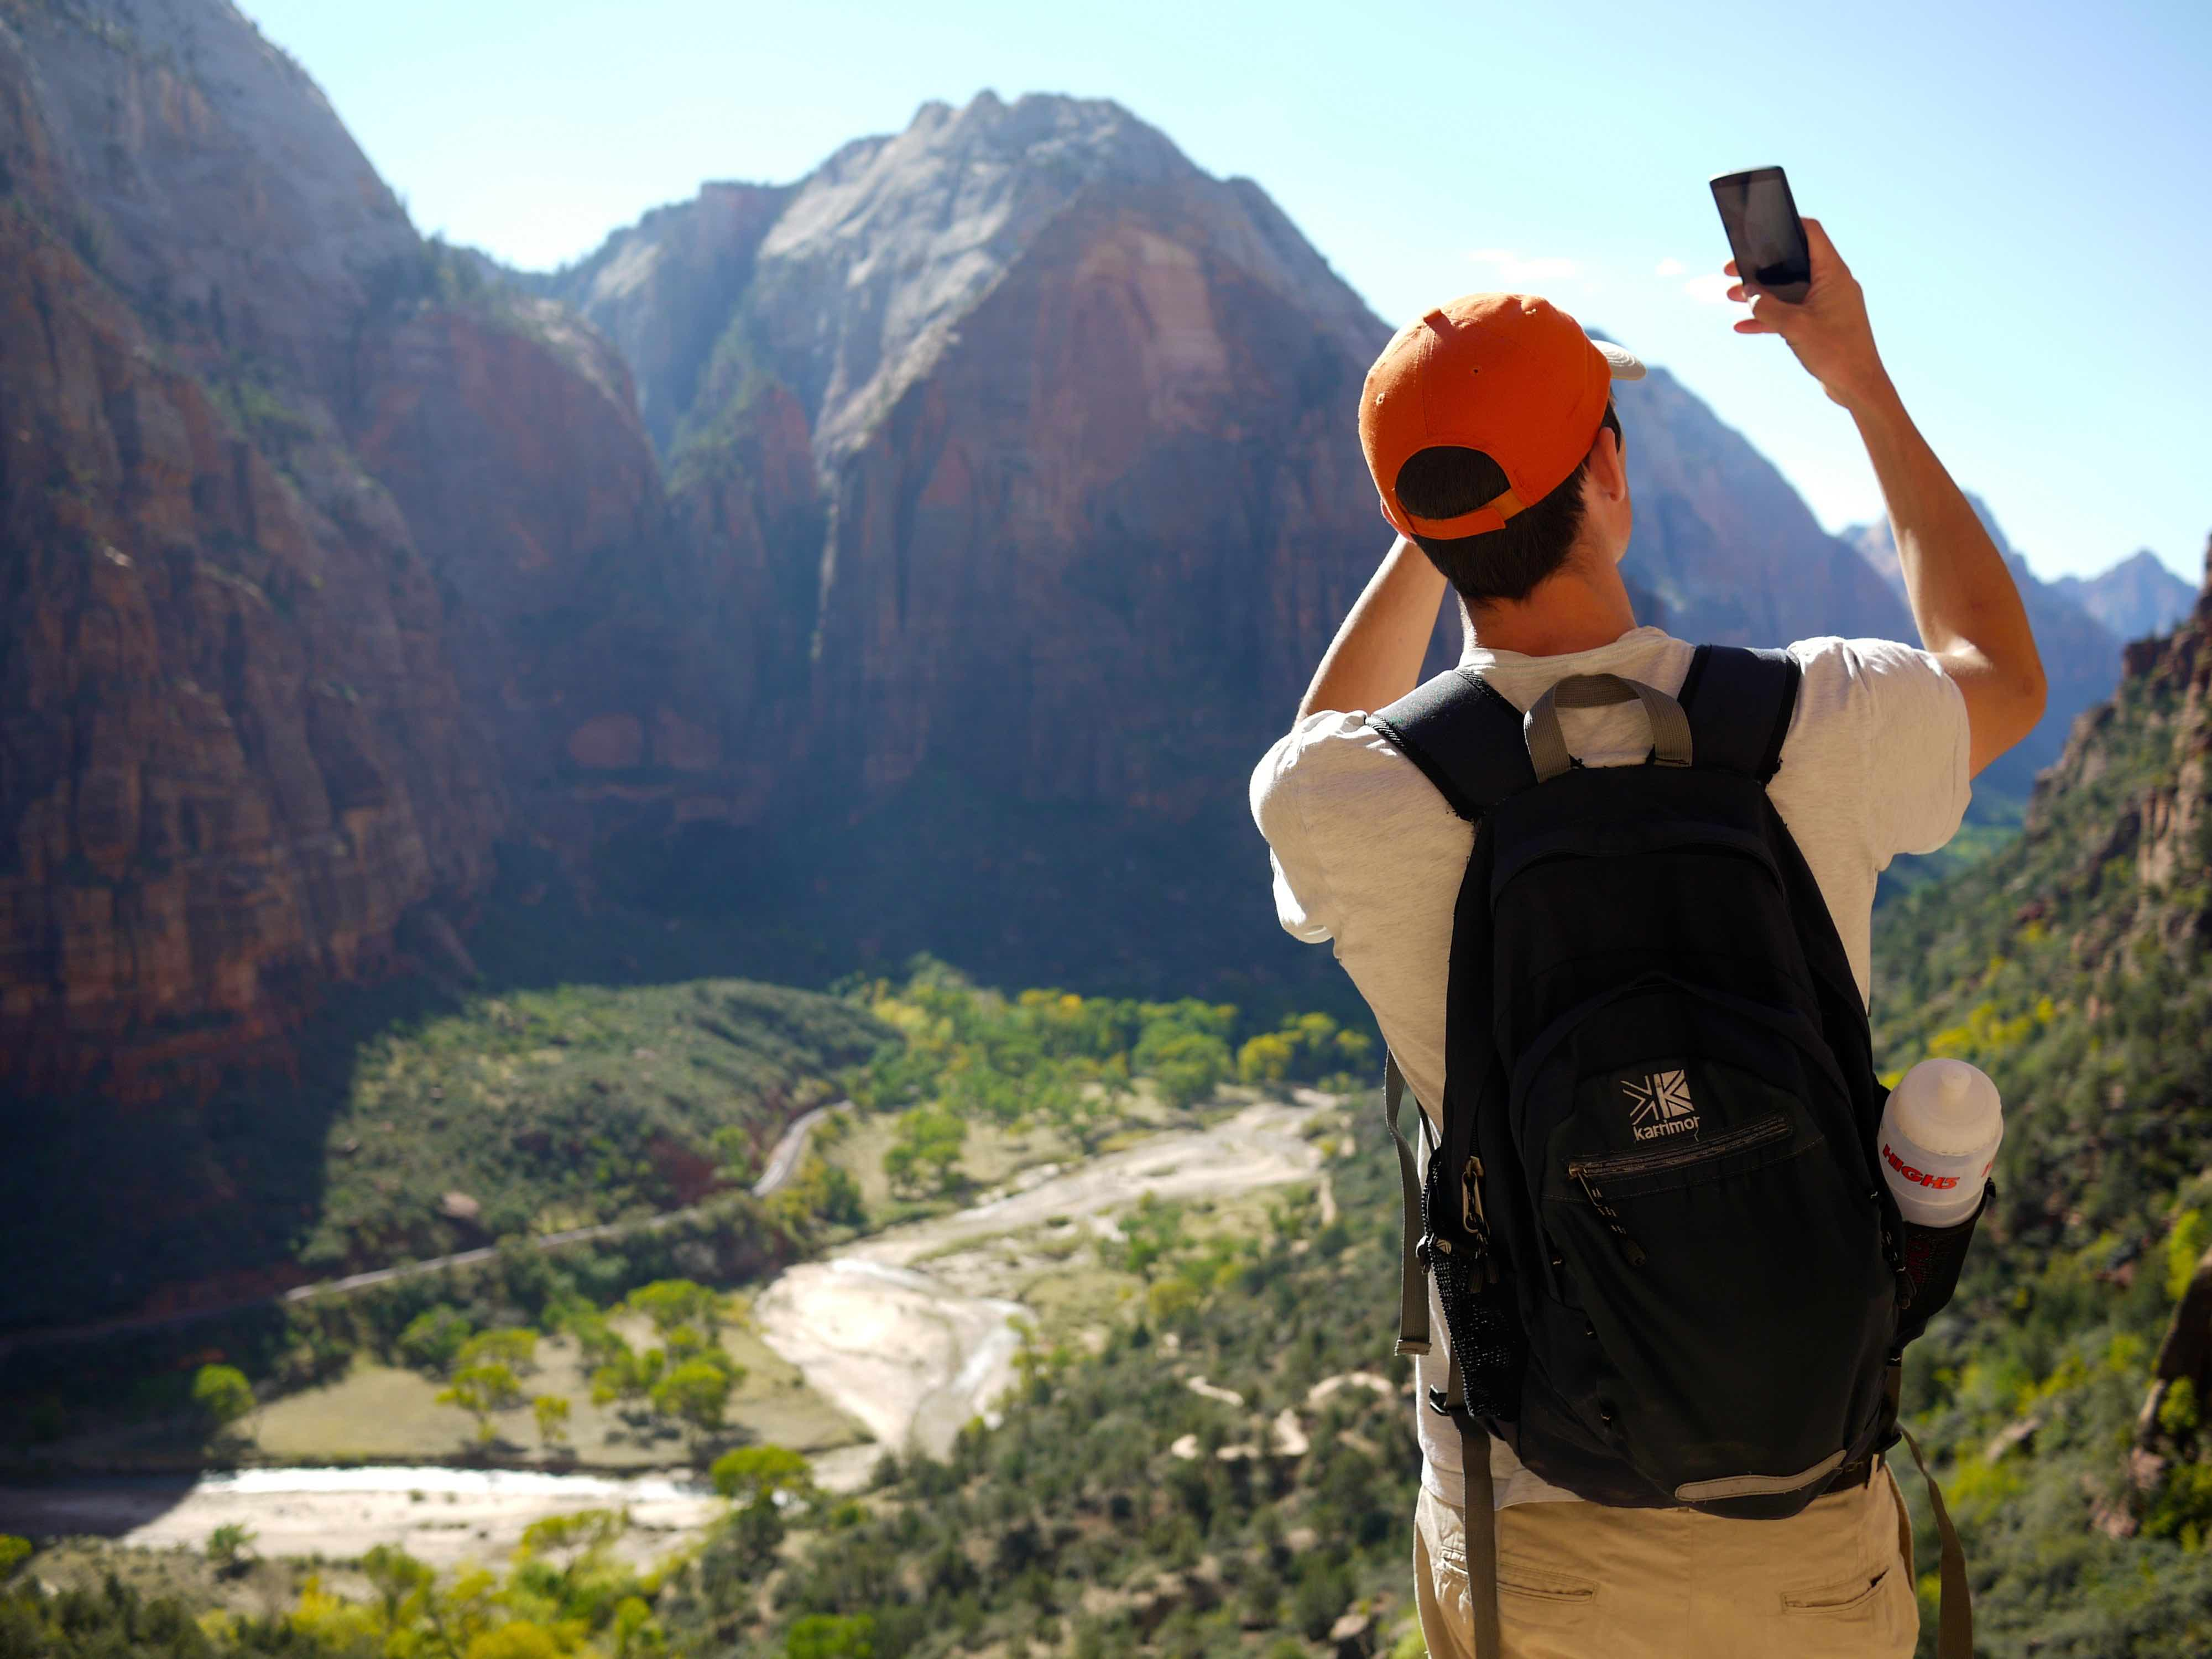 Lachie in Zion National Park